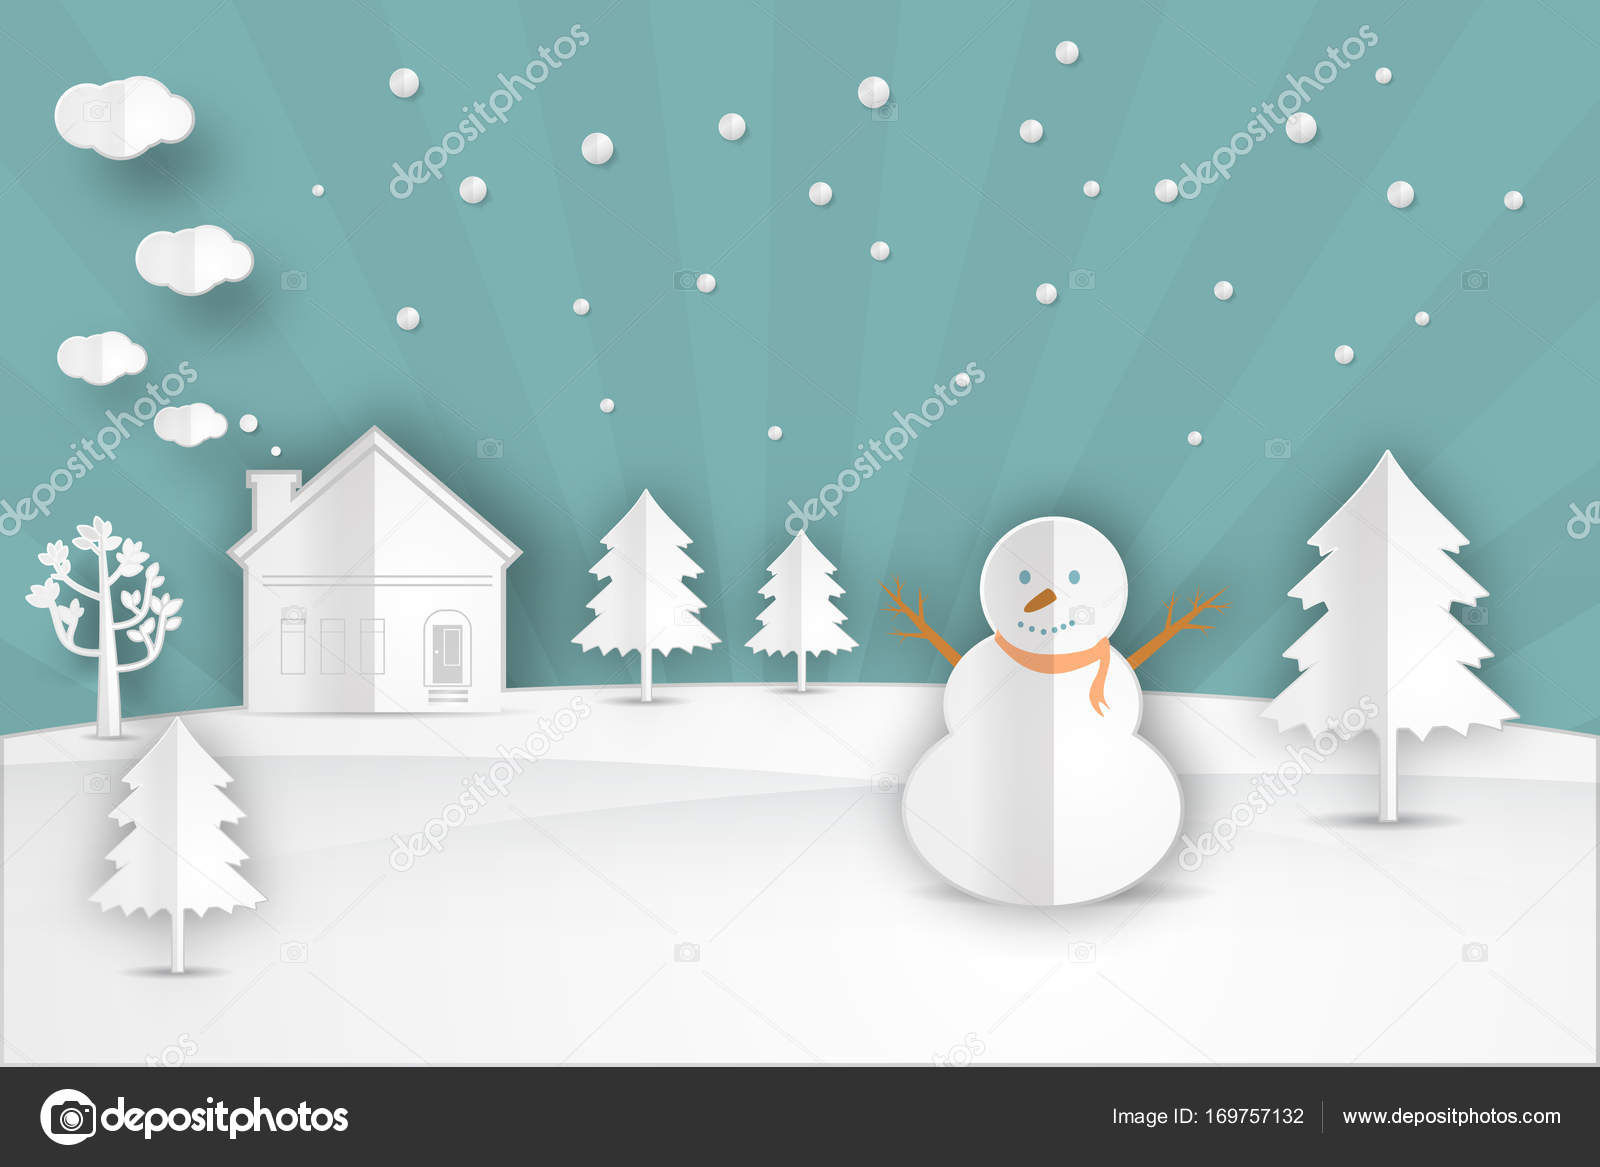 Winter Landscape With Christmas Trees Snowmen Stock Vector C Es7sense 169757132